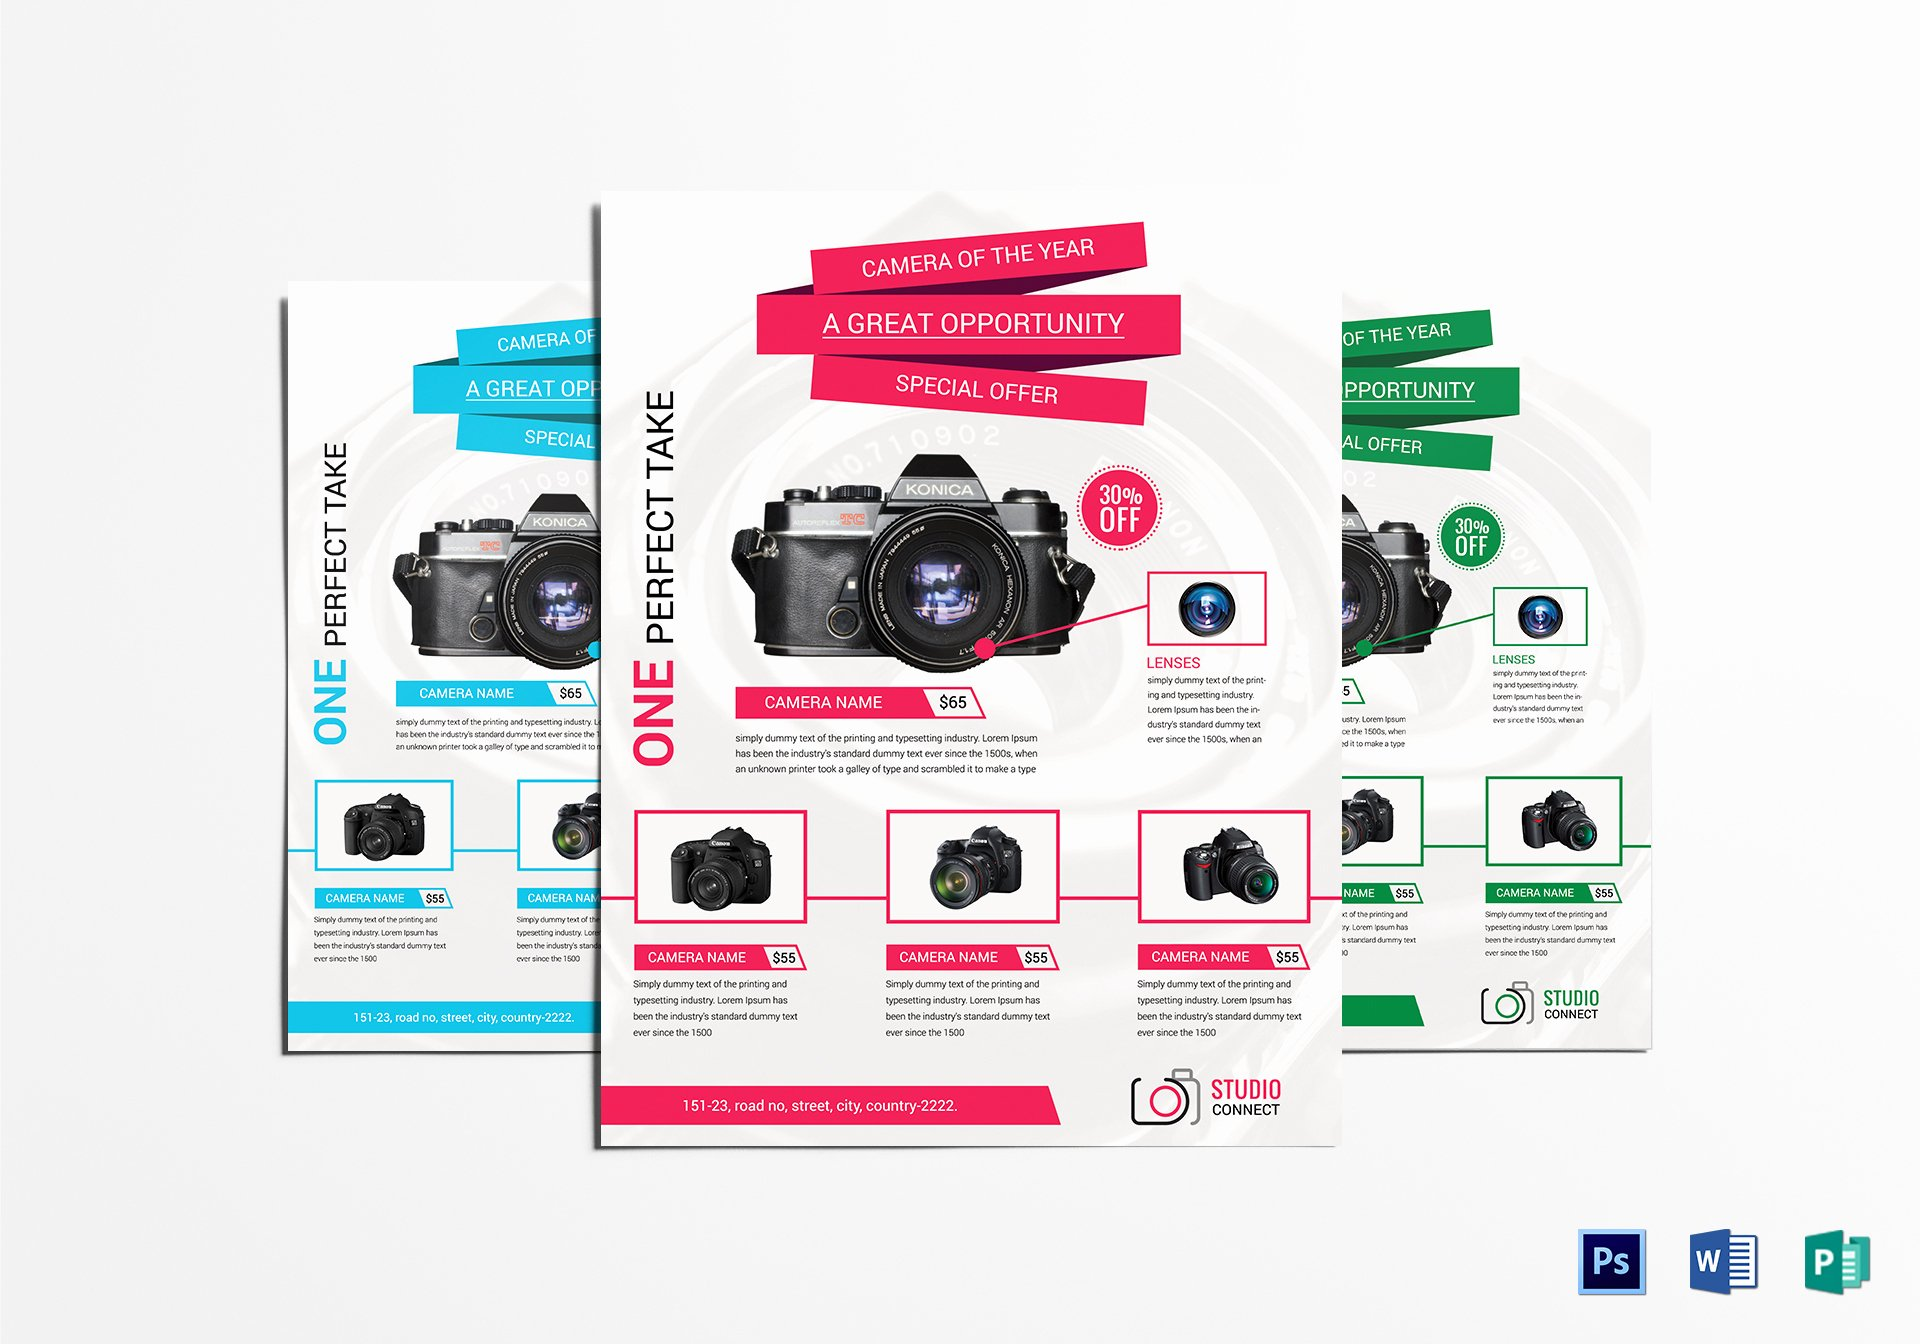 Promotional Flyers Template Free Awesome Camera Promotional Flyer Design Template In Psd Word